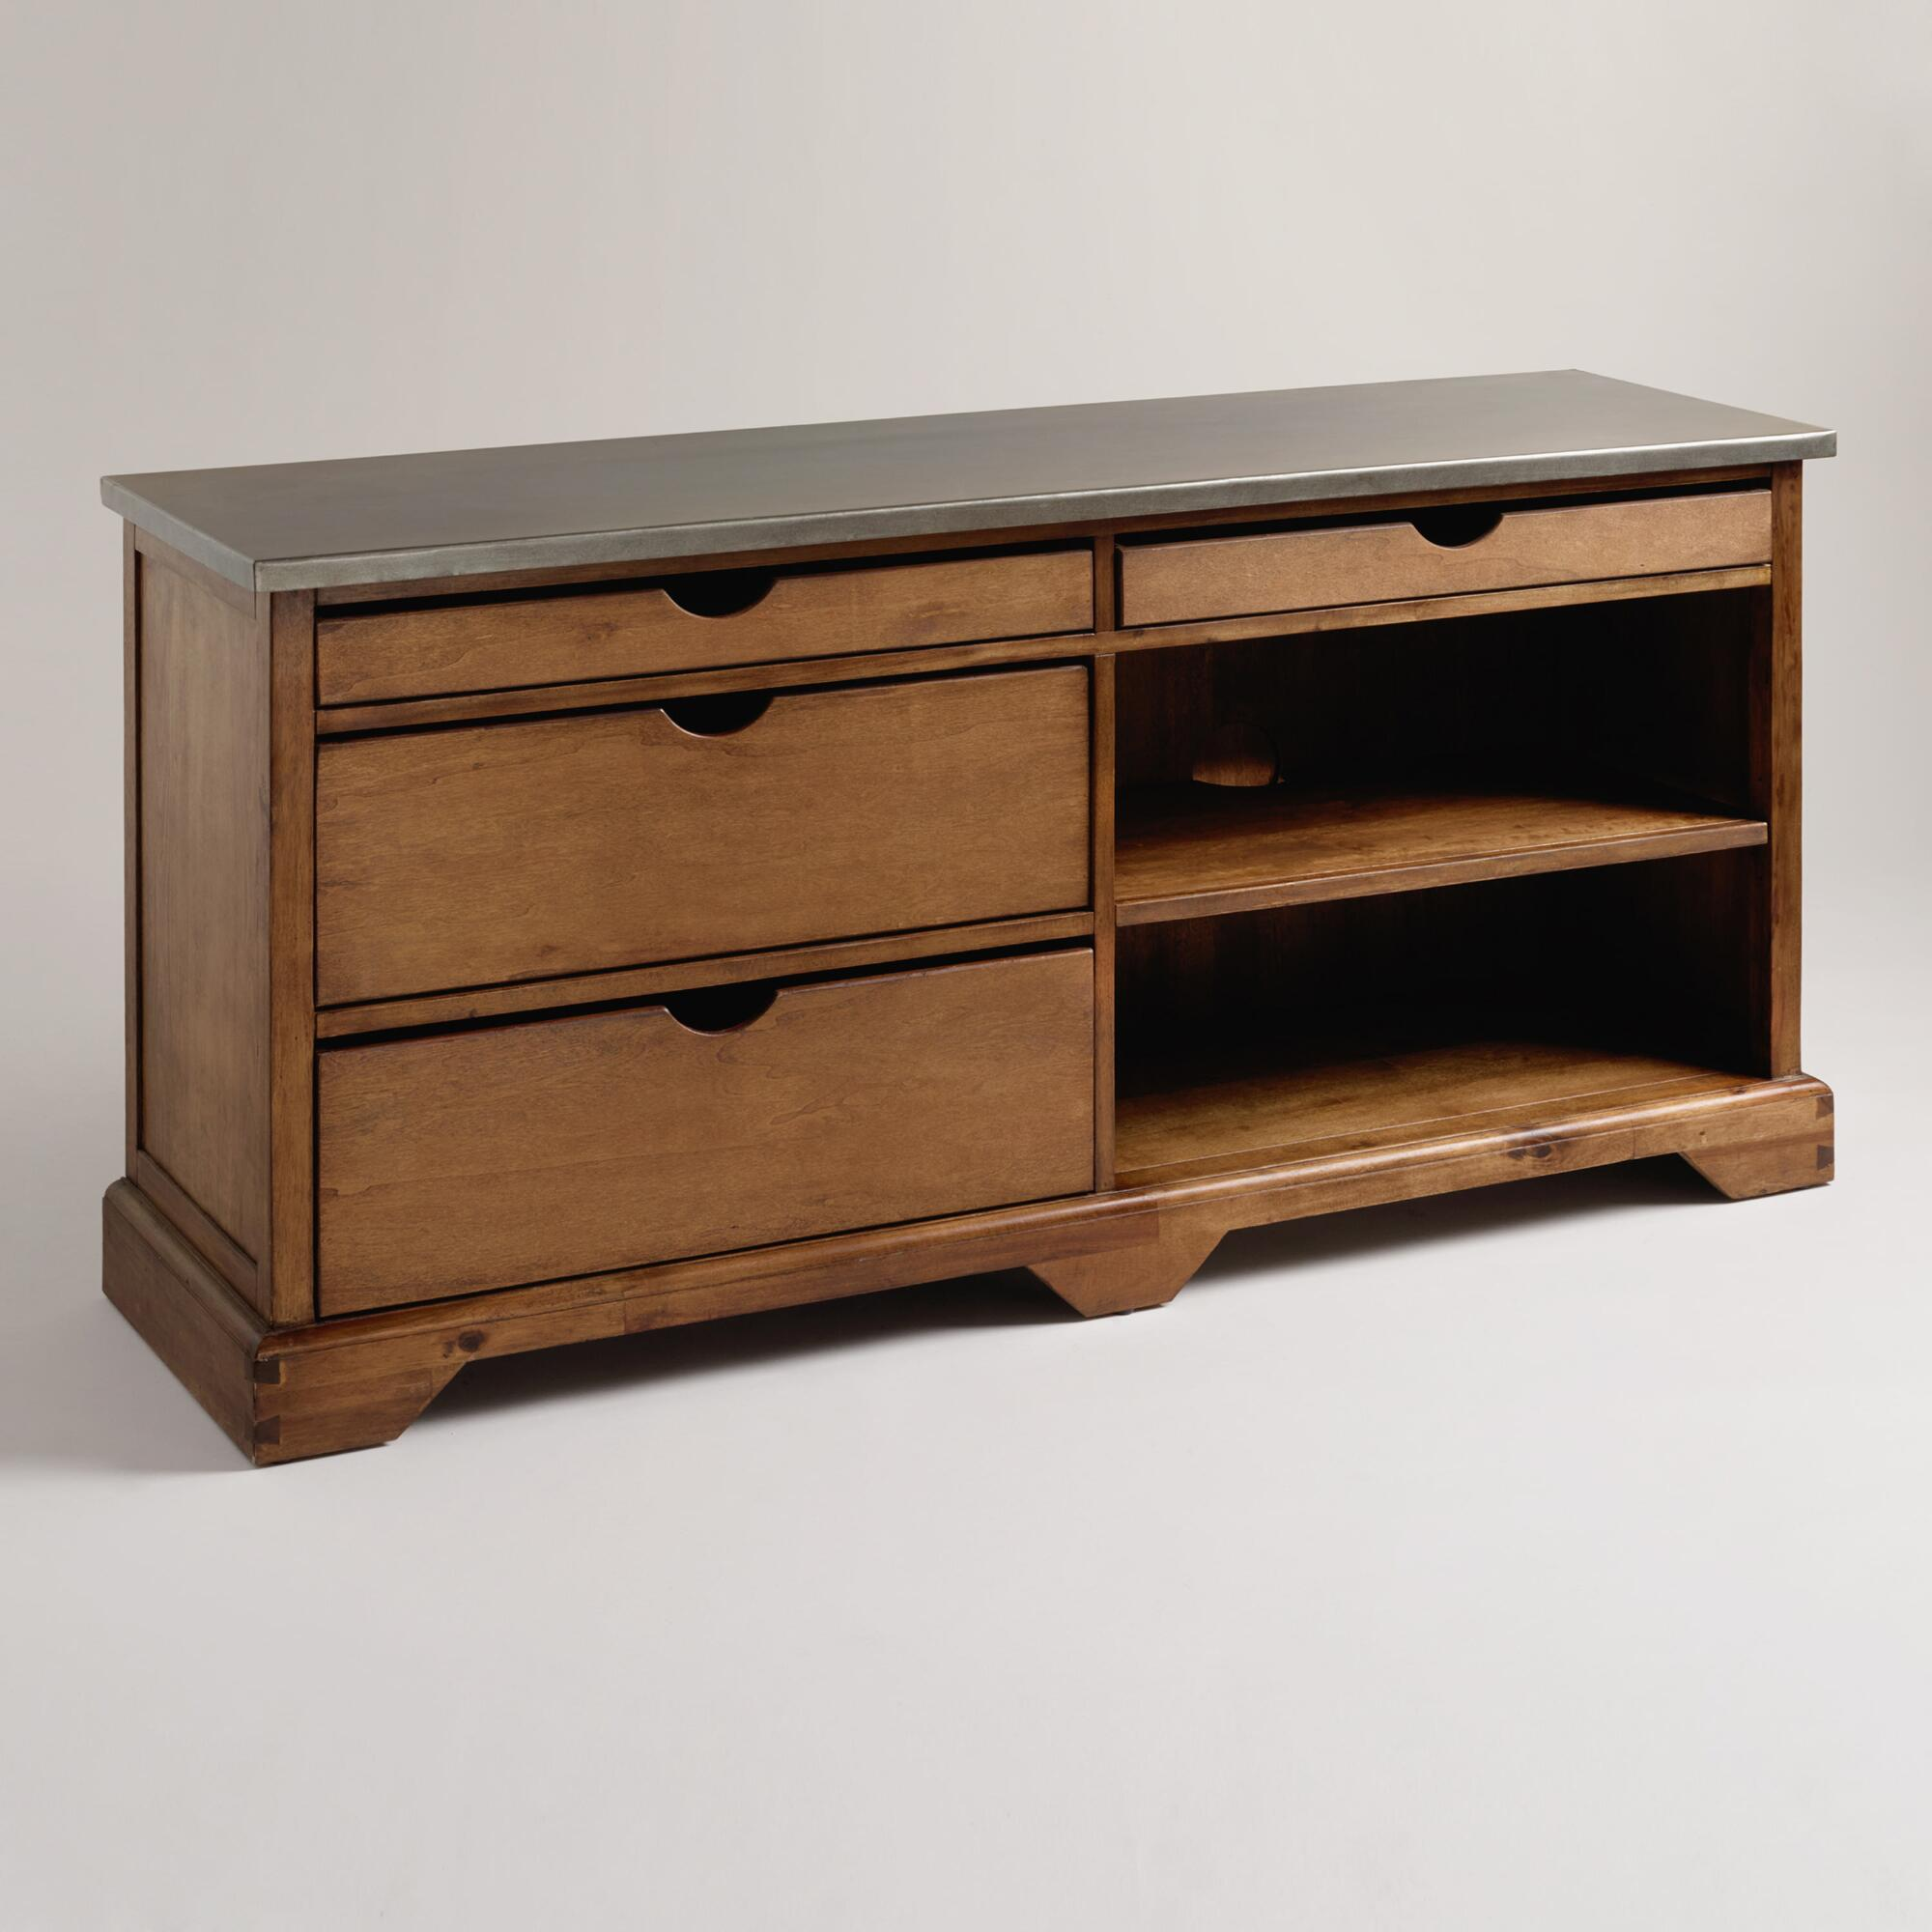 Media Cabinets Furniture: At The Galleria